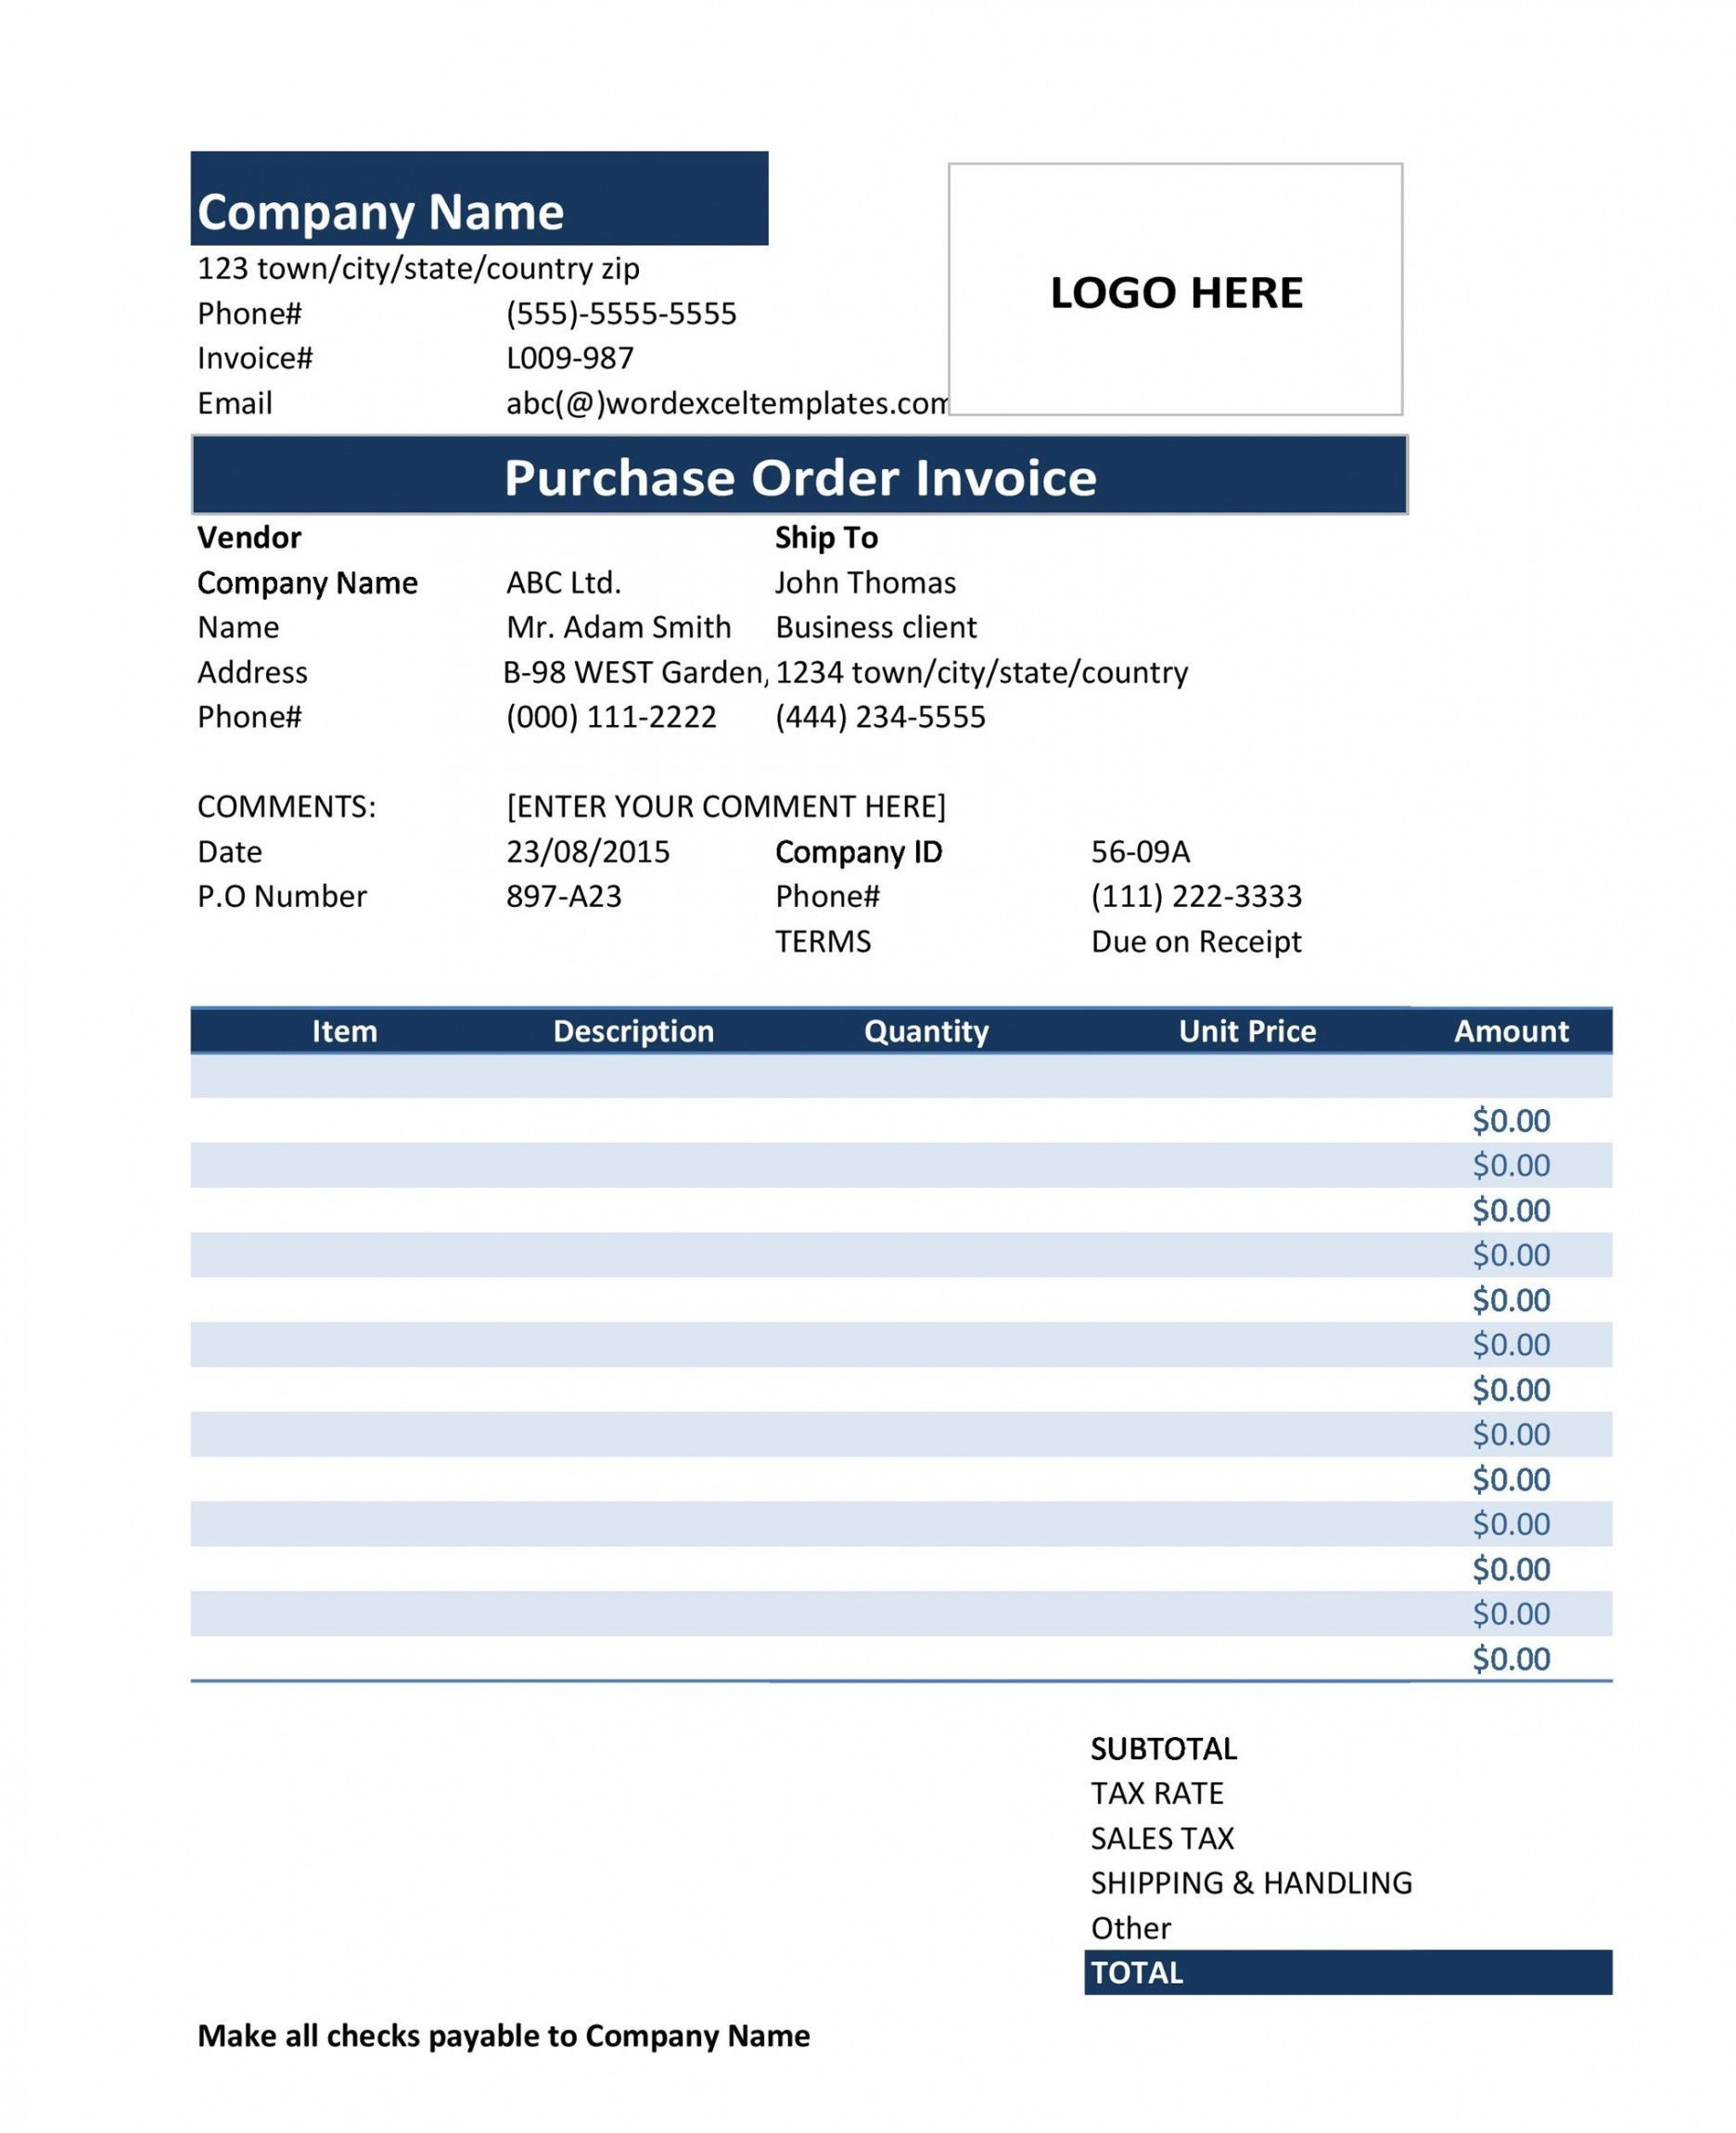 Explore Our Sample Of Purchase Order Invoice Template For Free In 2020 Invoice Template Purchase Order Template Purchase Order